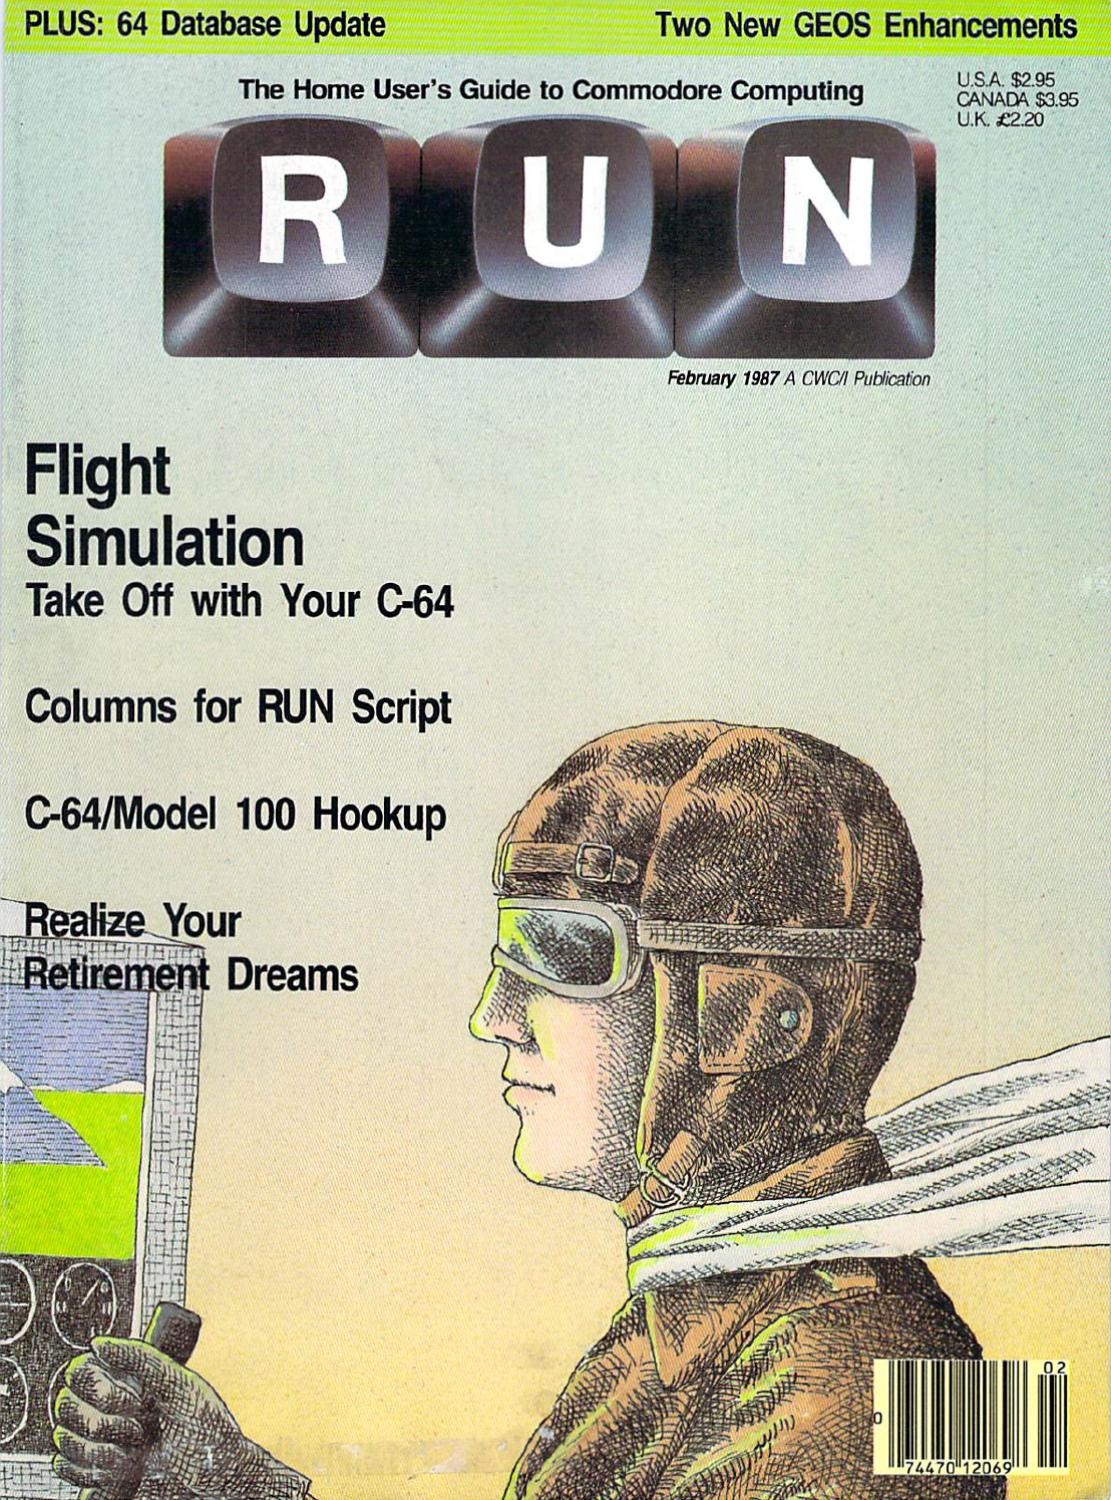 Run_Issue_38_1987_Feb by Zetmoon - issuu